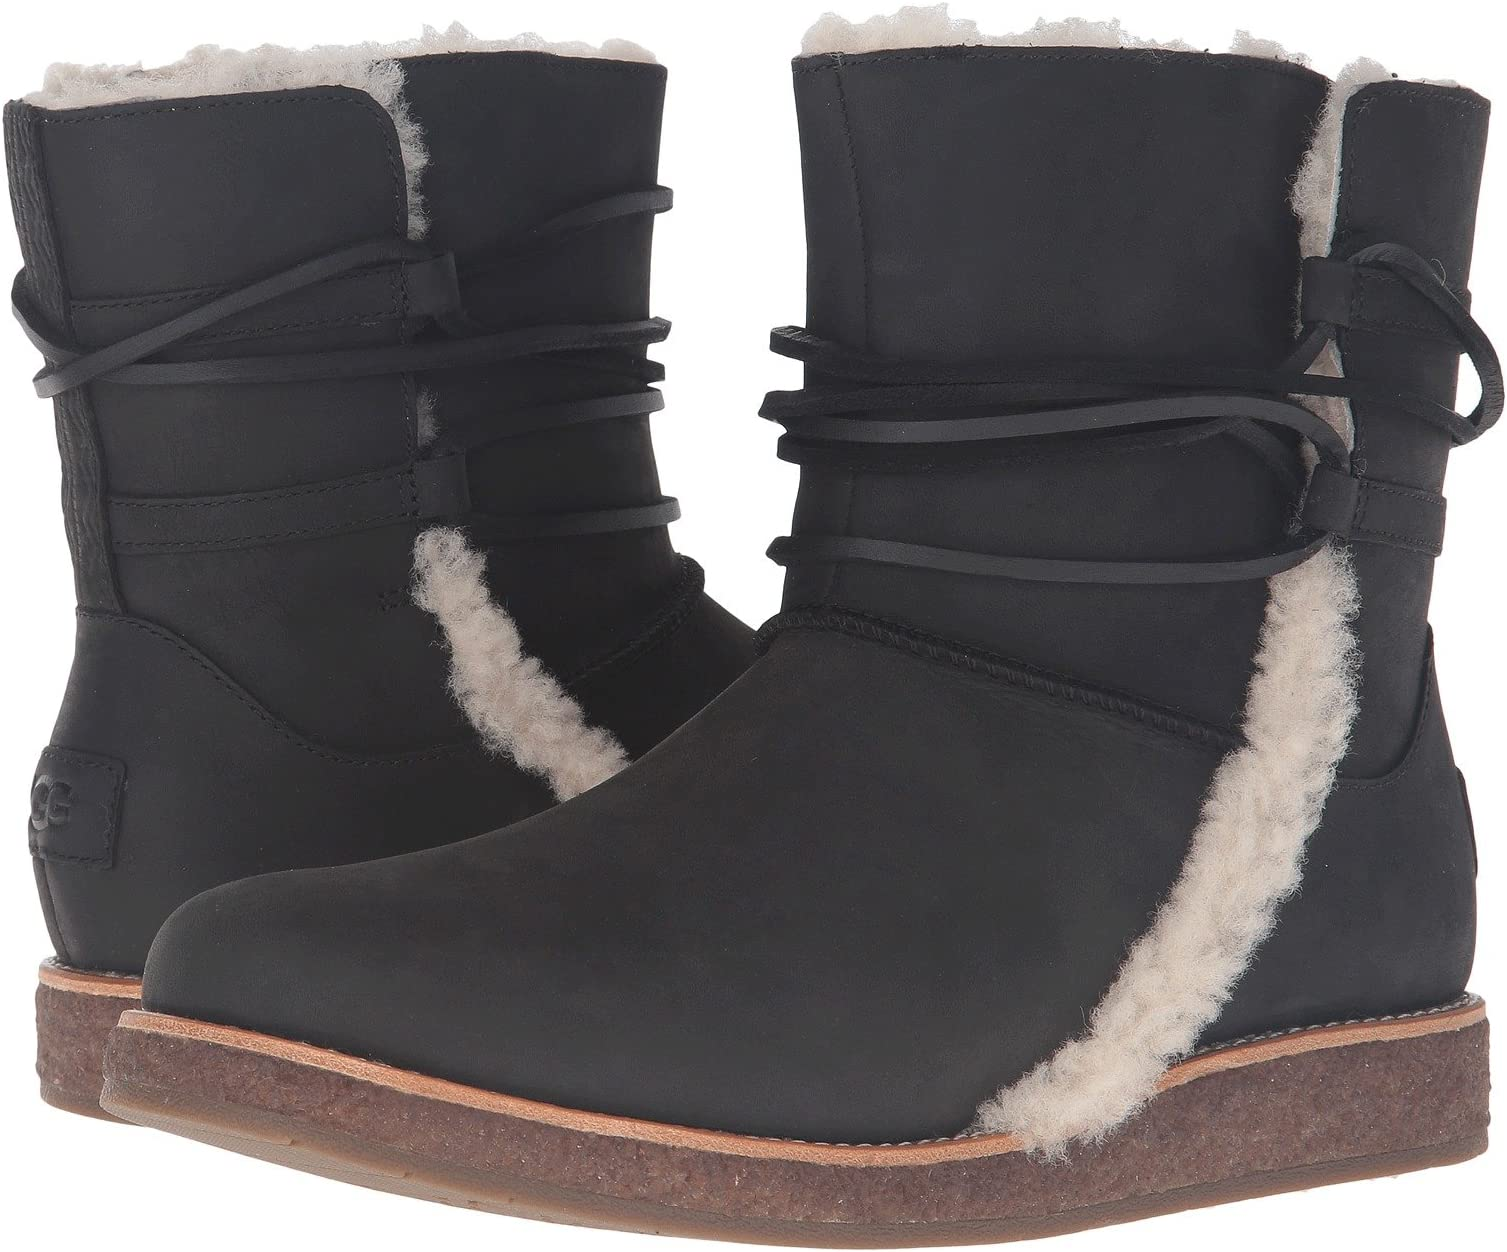 6pm womens ugg sale